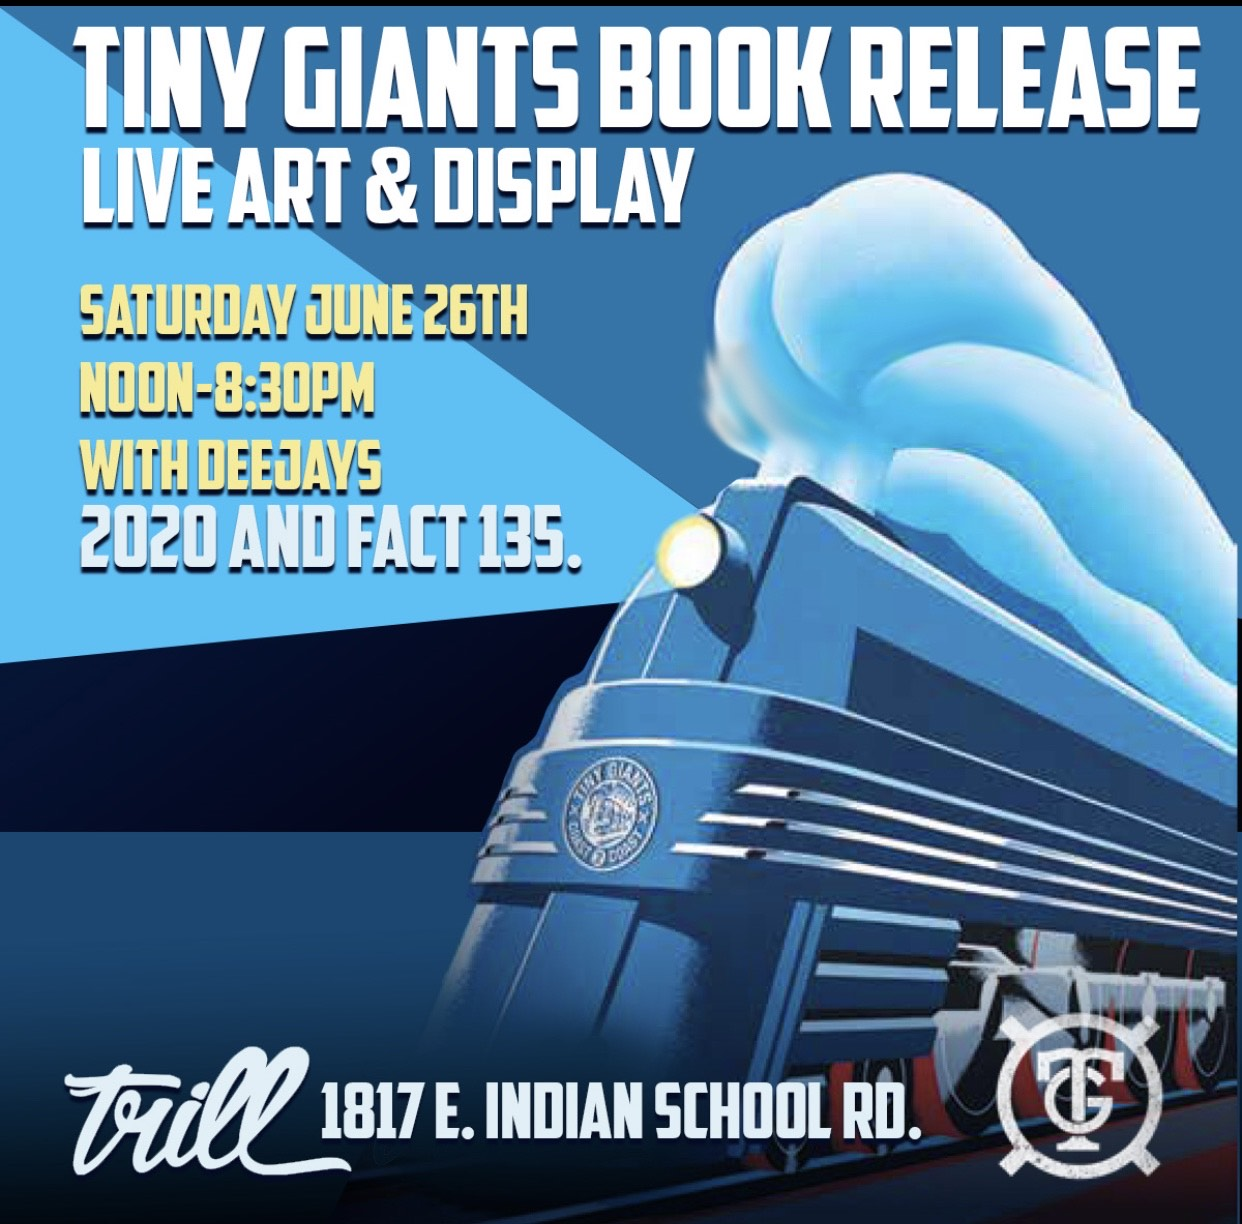 Tiny Giants Book Release and Art Display